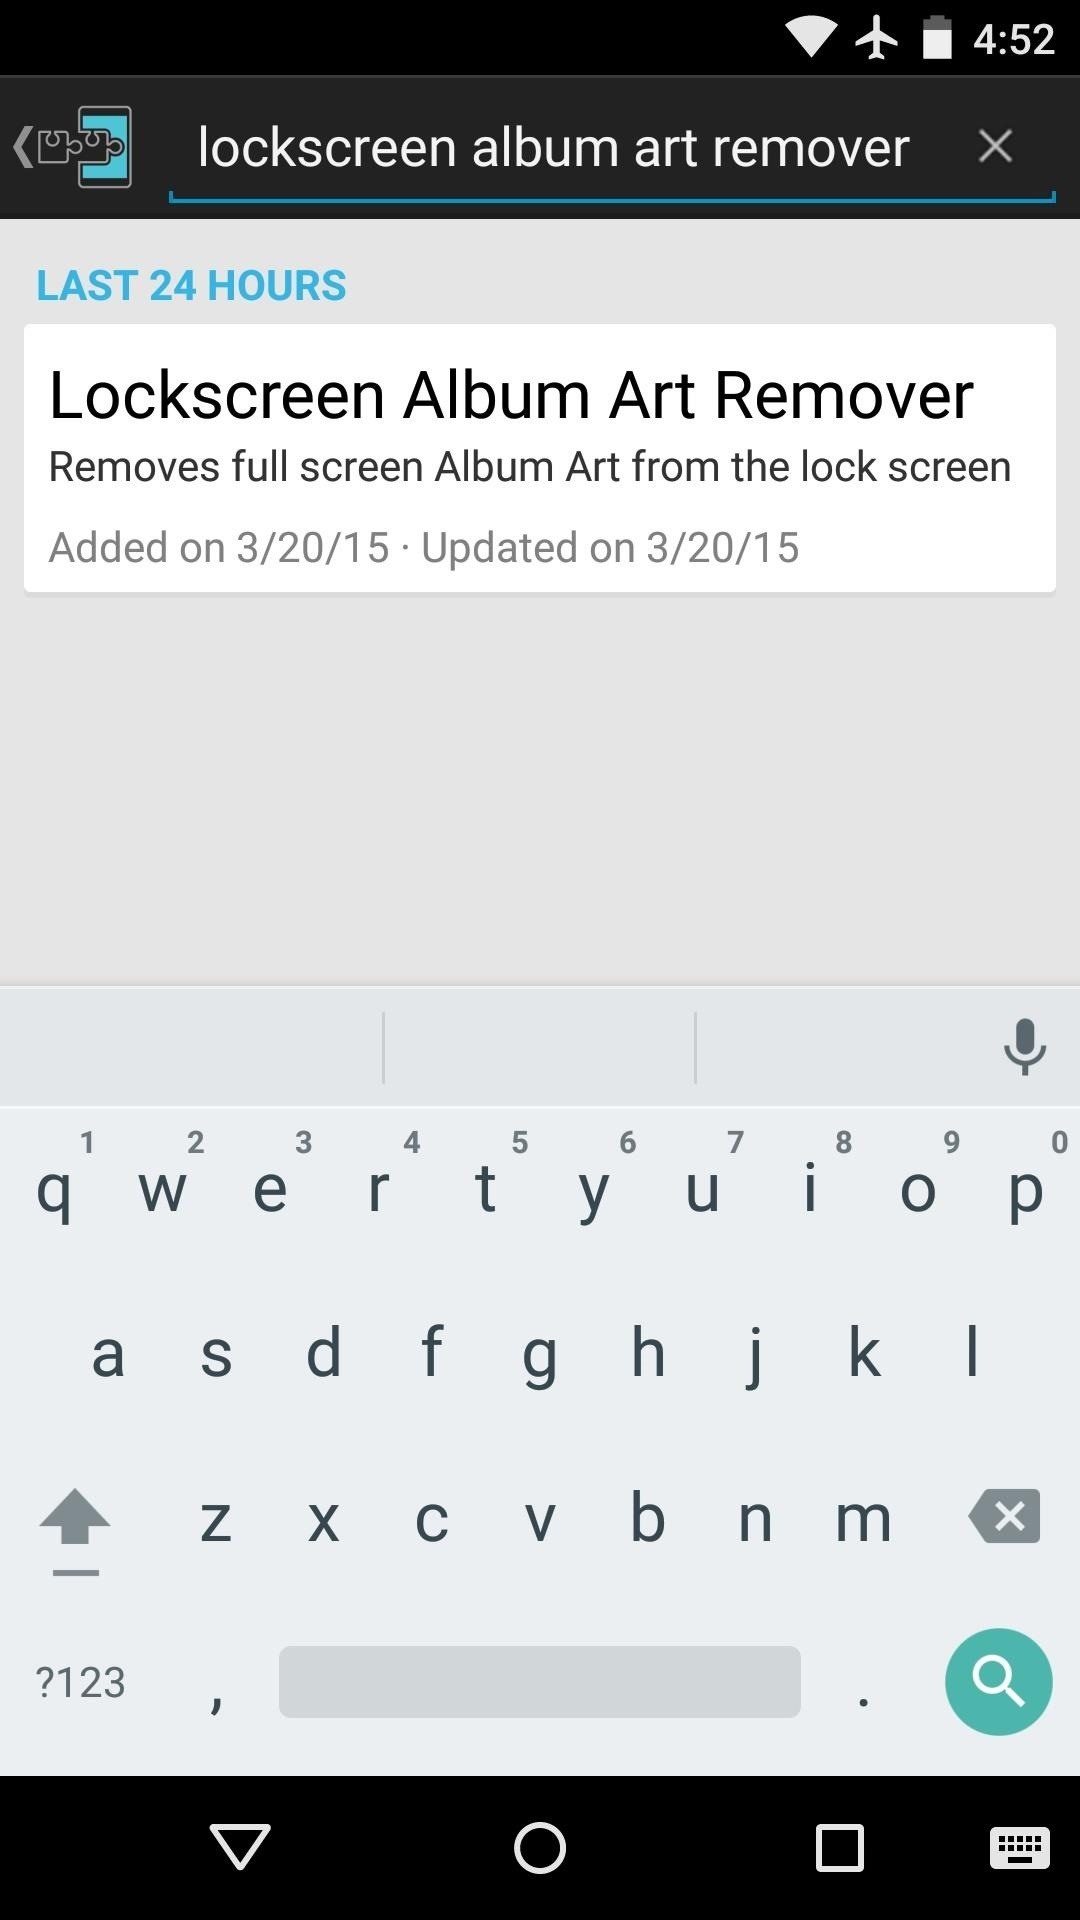 How to Disable Lock Screen Album Art in Android Lollipop